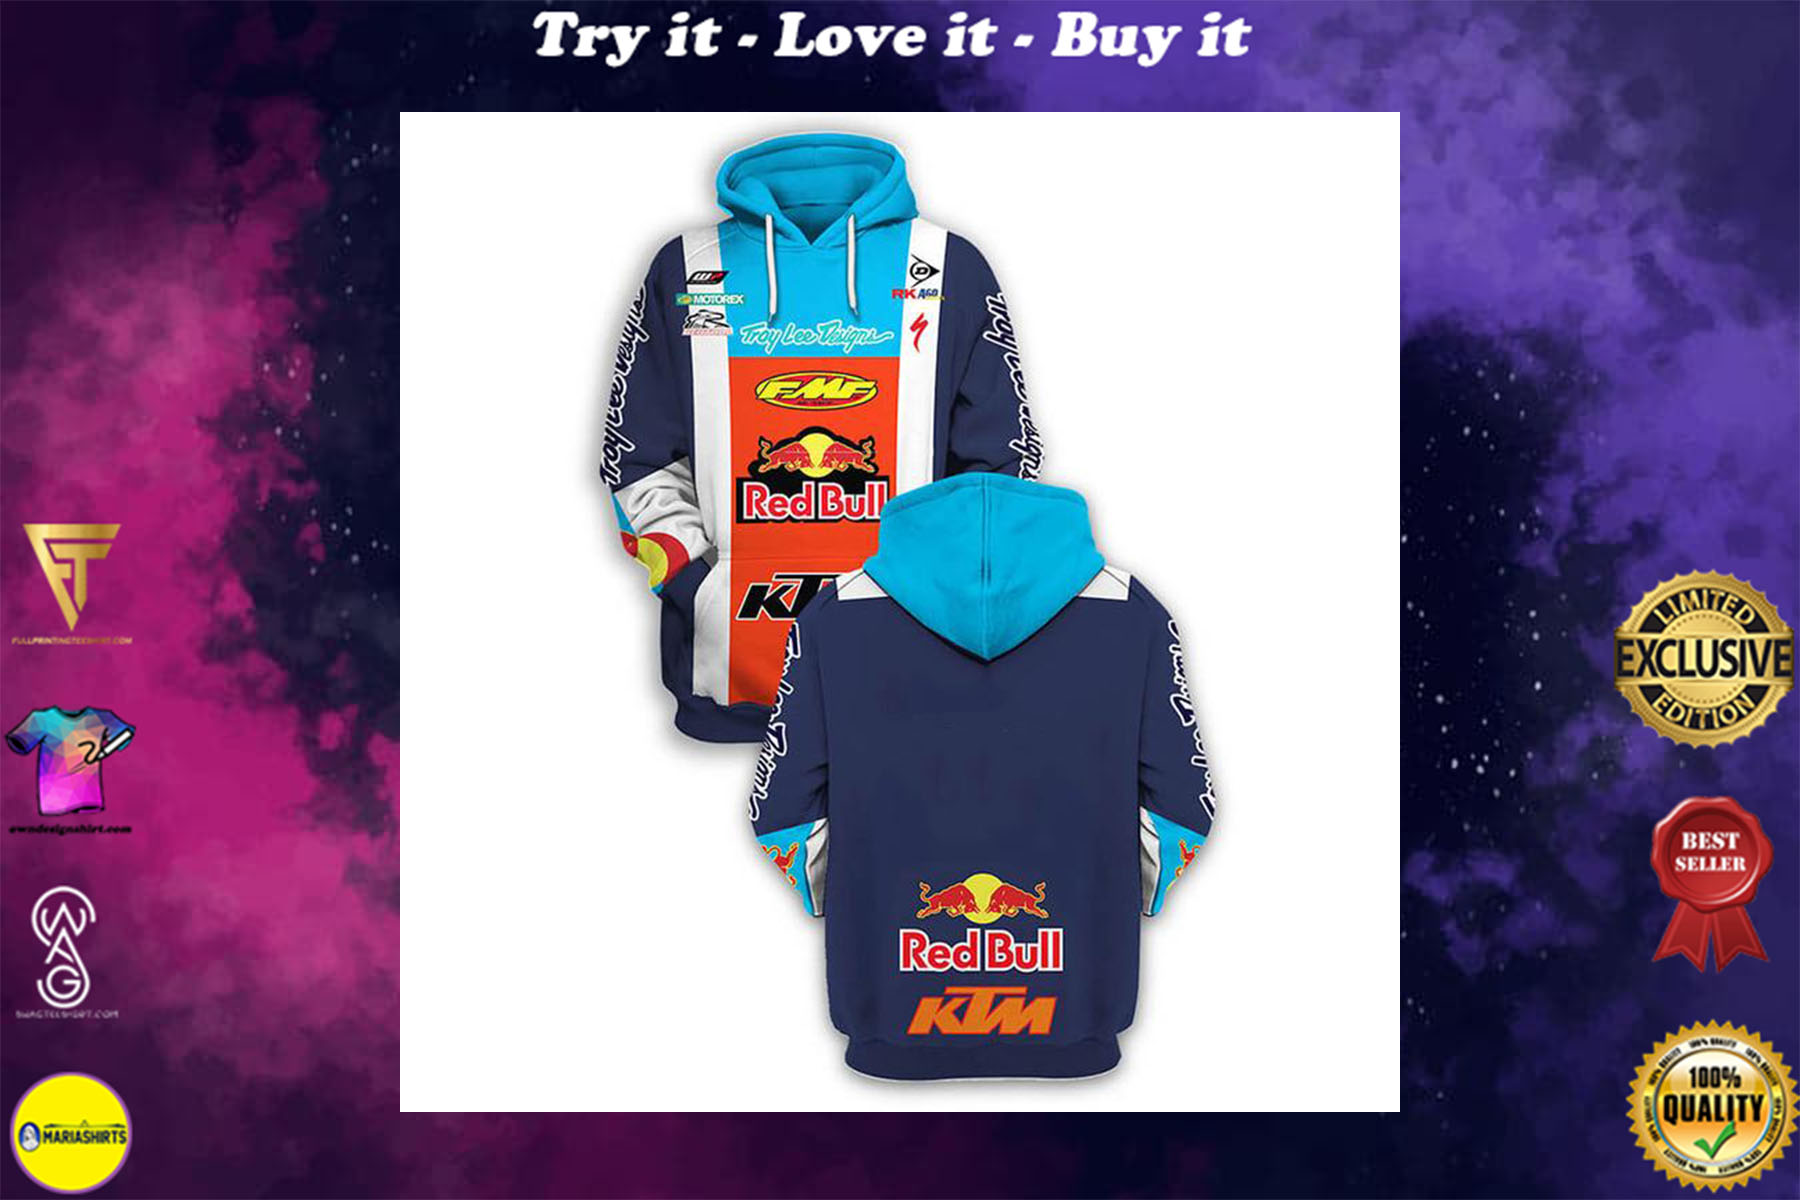 [special edition] KTM red bull troy lee designs full printing shirt - maria